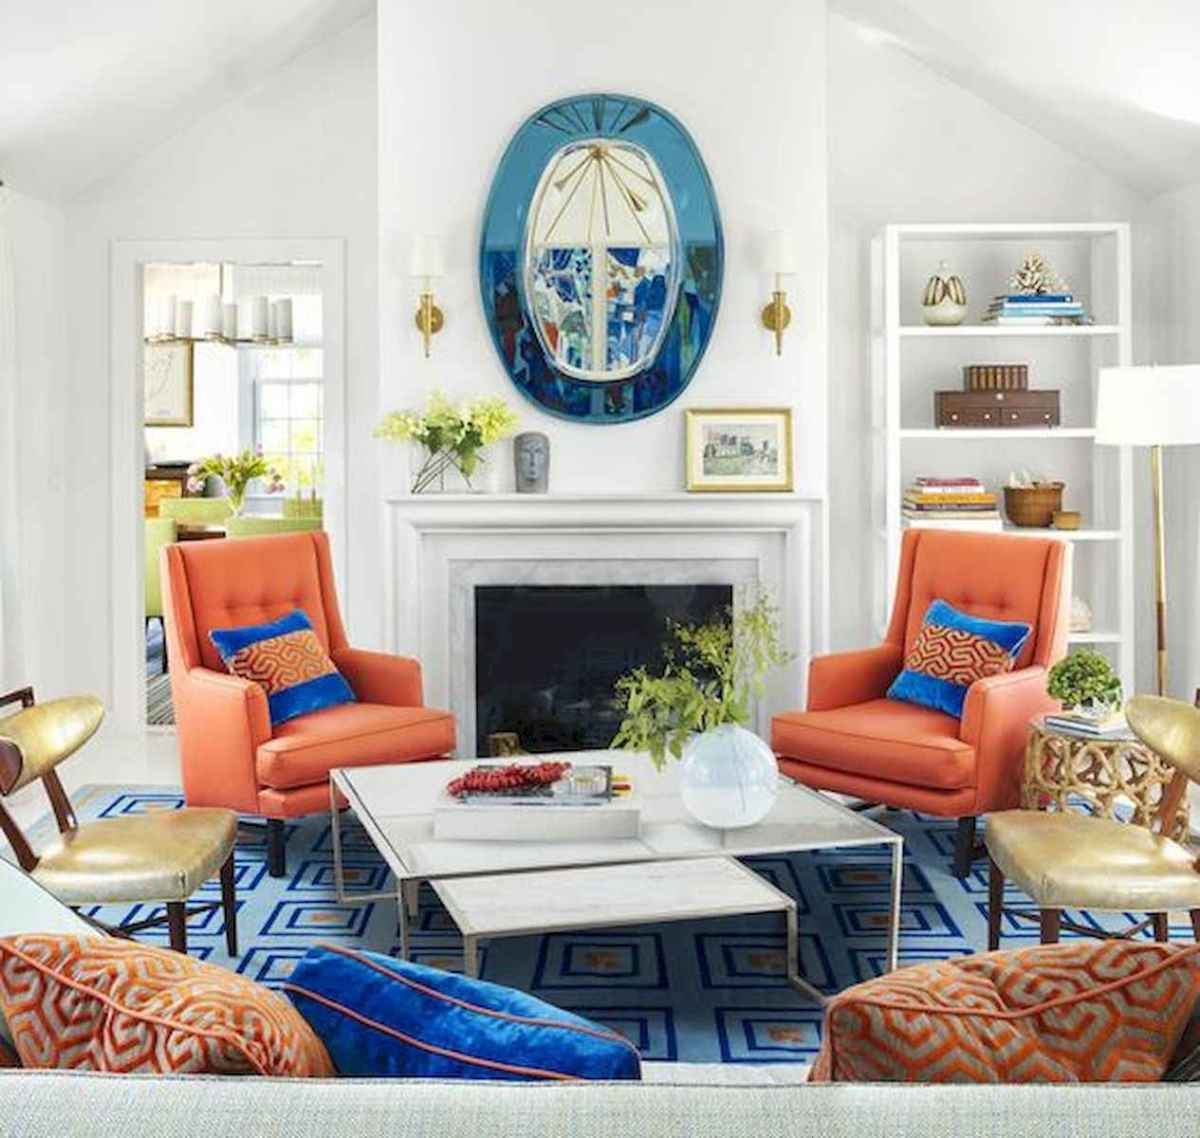 80+ Stunning Colorful Living Room Decor Ideas And Remodel for Summer Project (3)